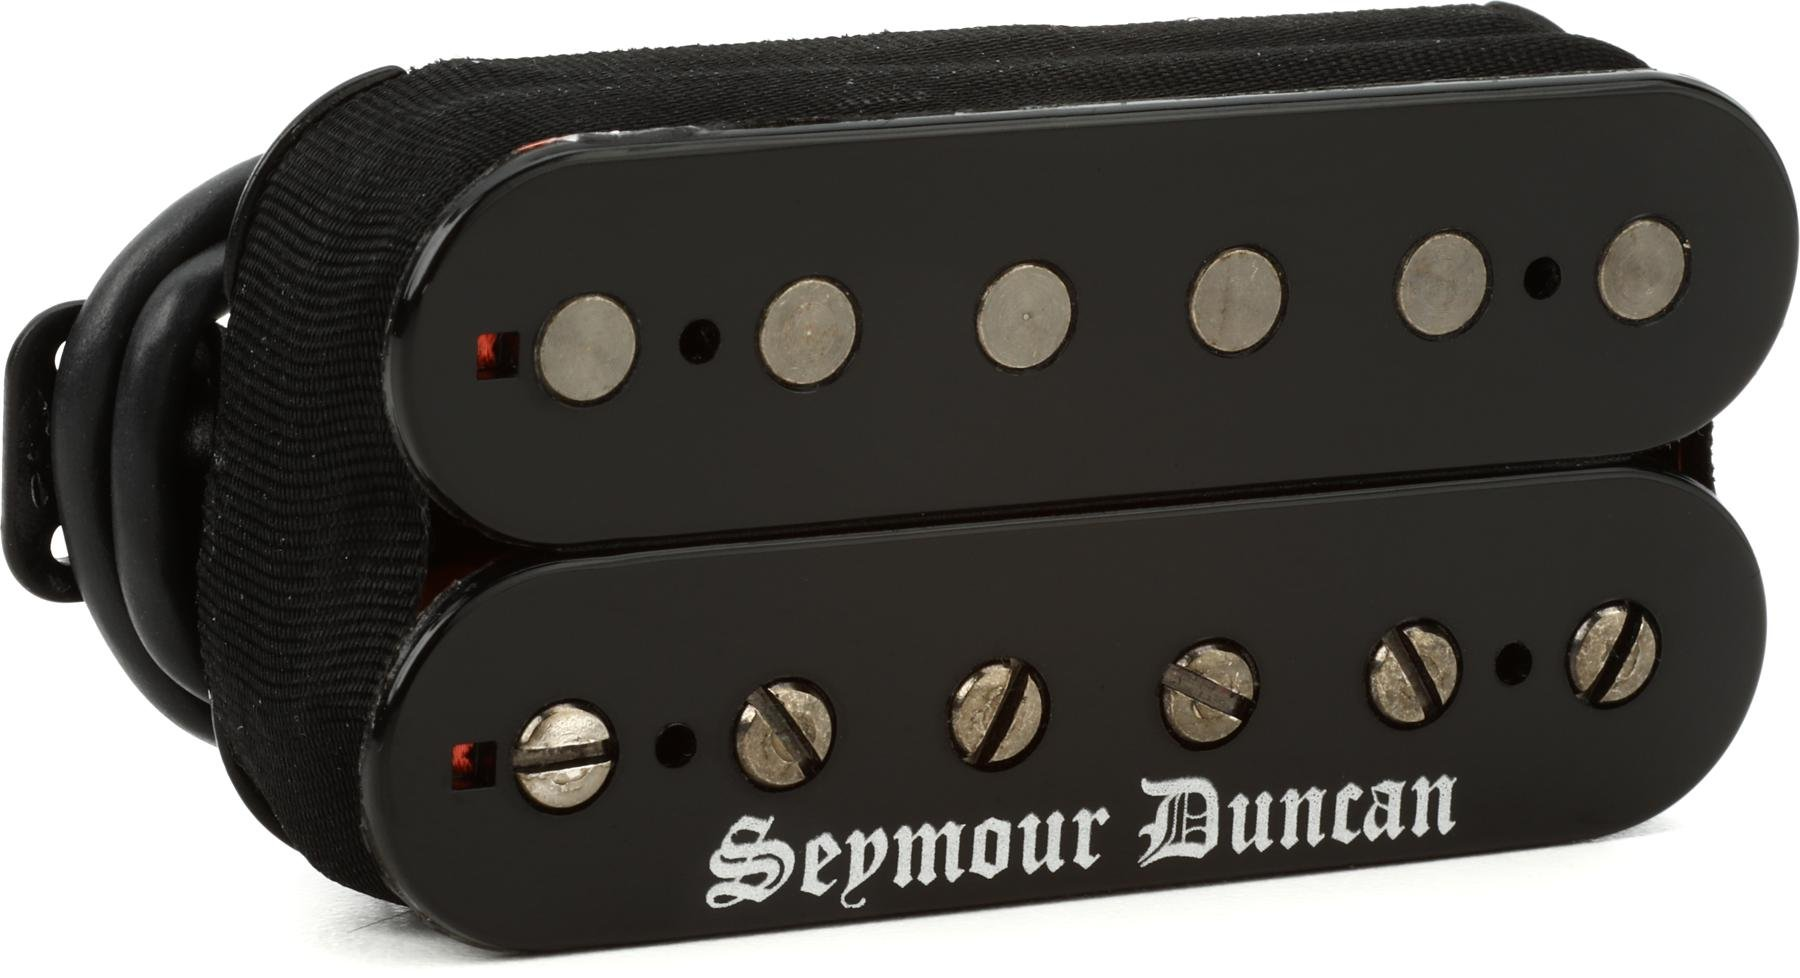 Seymour Duncan Black Winter Humbucker Pickup - Trembucker (Bridge ...